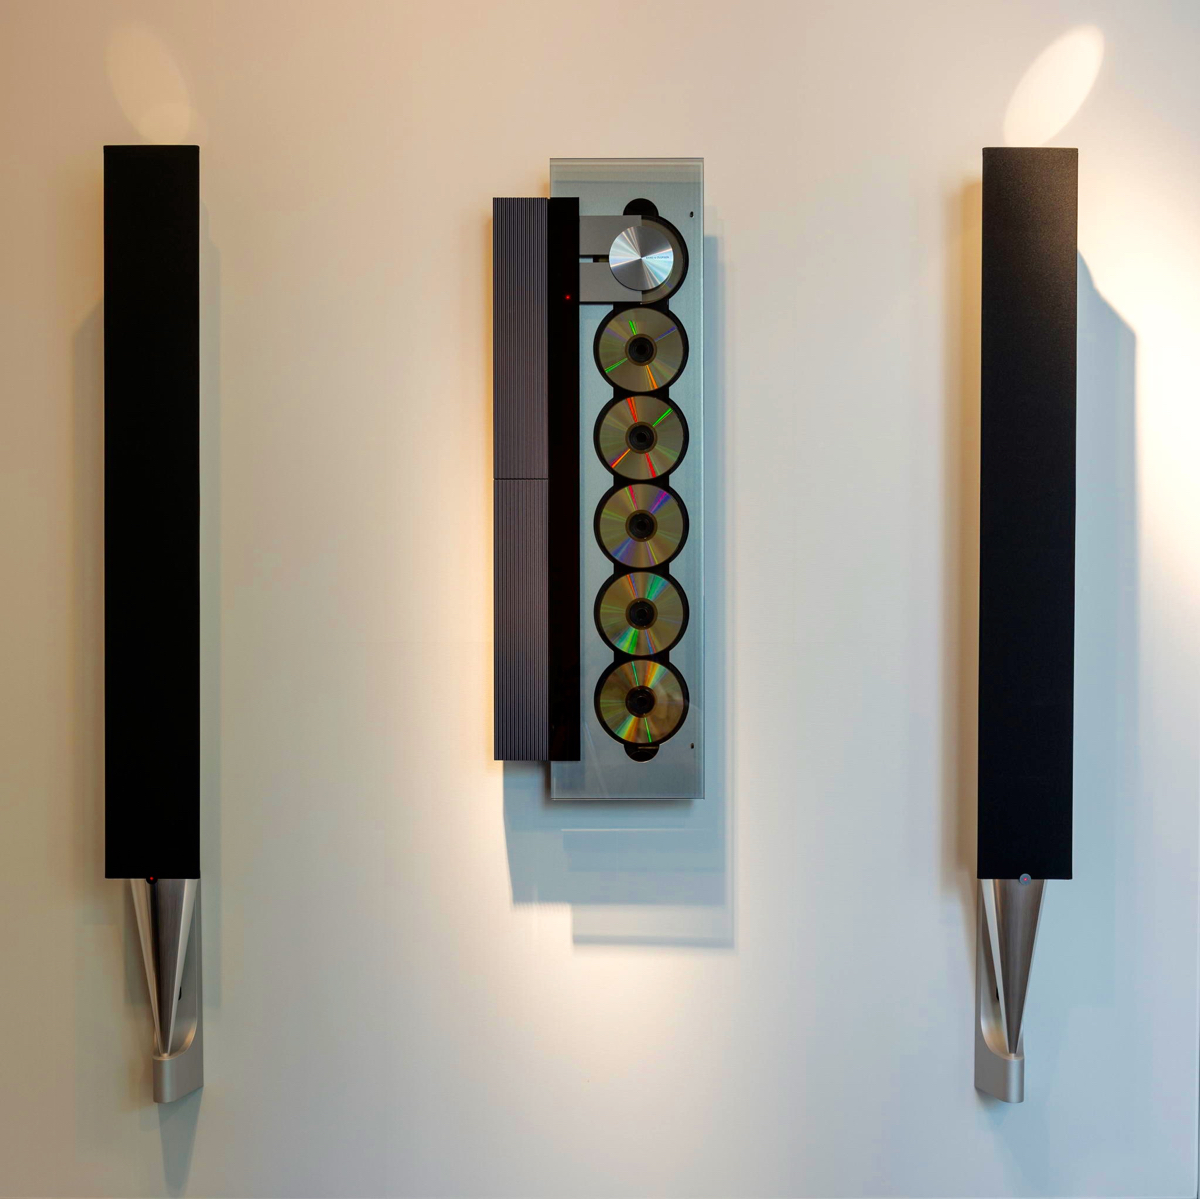 BeoLab 8002 Wall Mounted